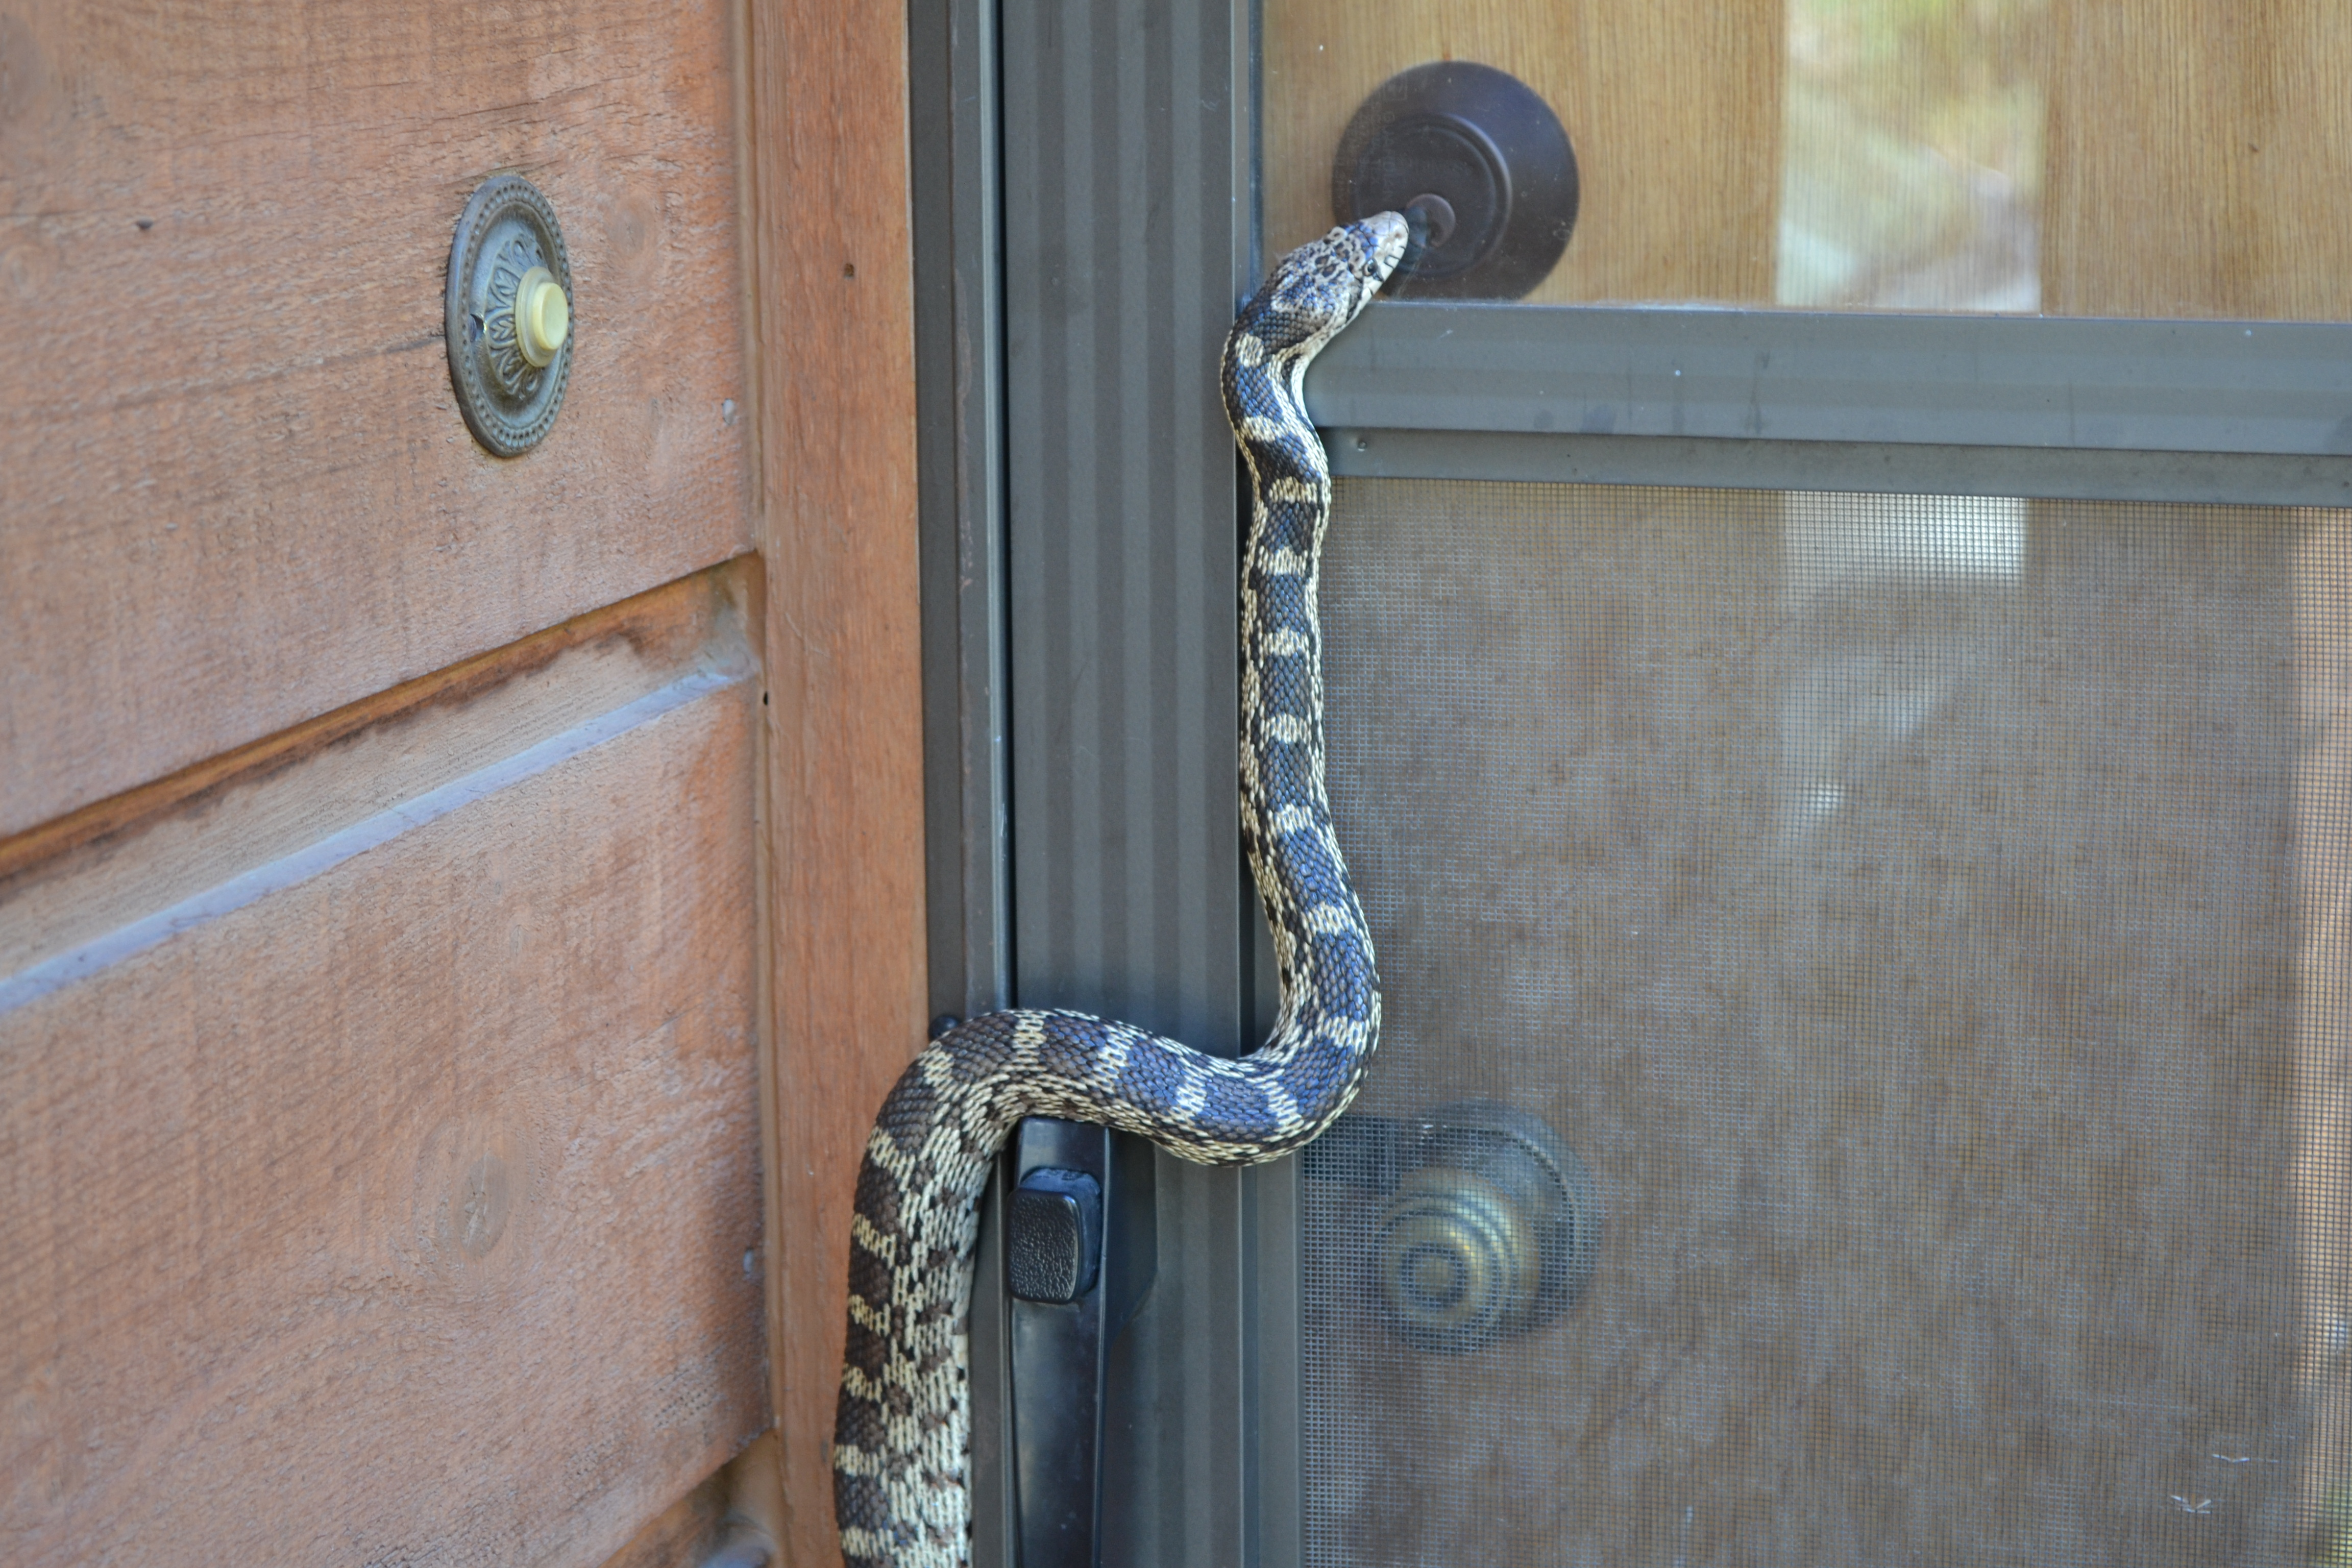 No need to worryu2026 heu0027s a Bull Snake. Though they look nearly identical to a rattle snake they do not have a rattle as you see and they are not venomous. & Welcome Home u2013 A PRAYERFUL LIFE pezcame.com